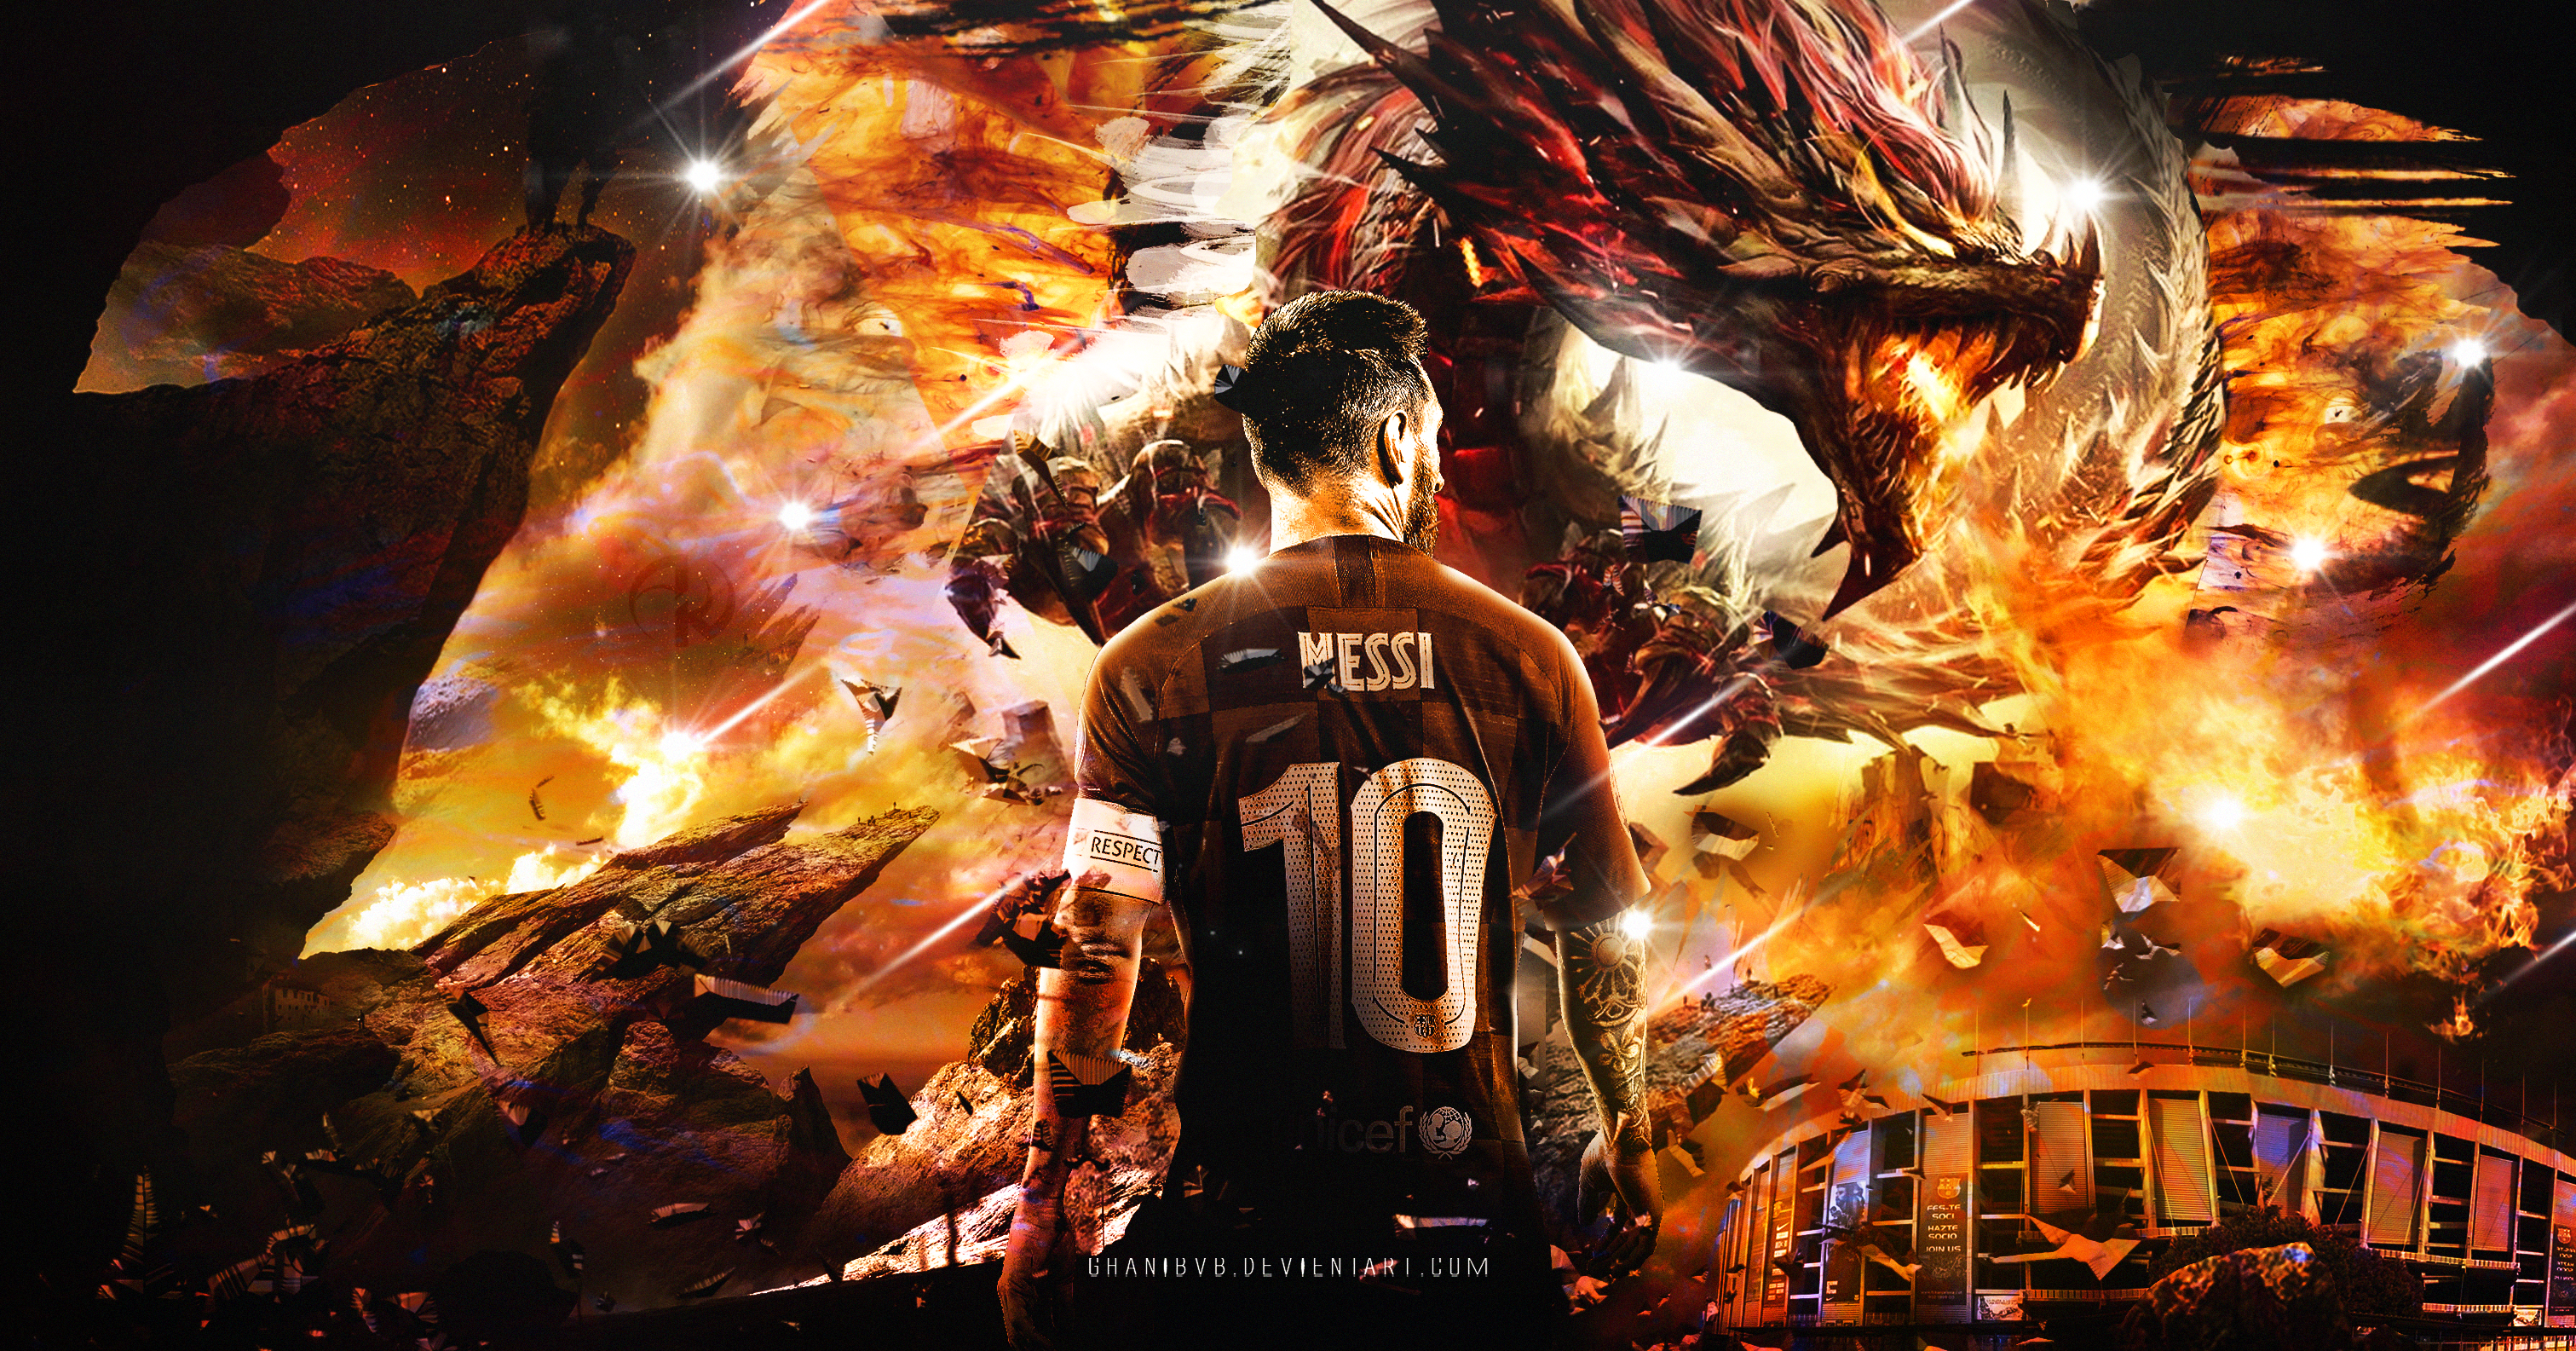 lionel messi wallpaper fc barcelona 2019 20 by ghanibvb on deviantart deviantart